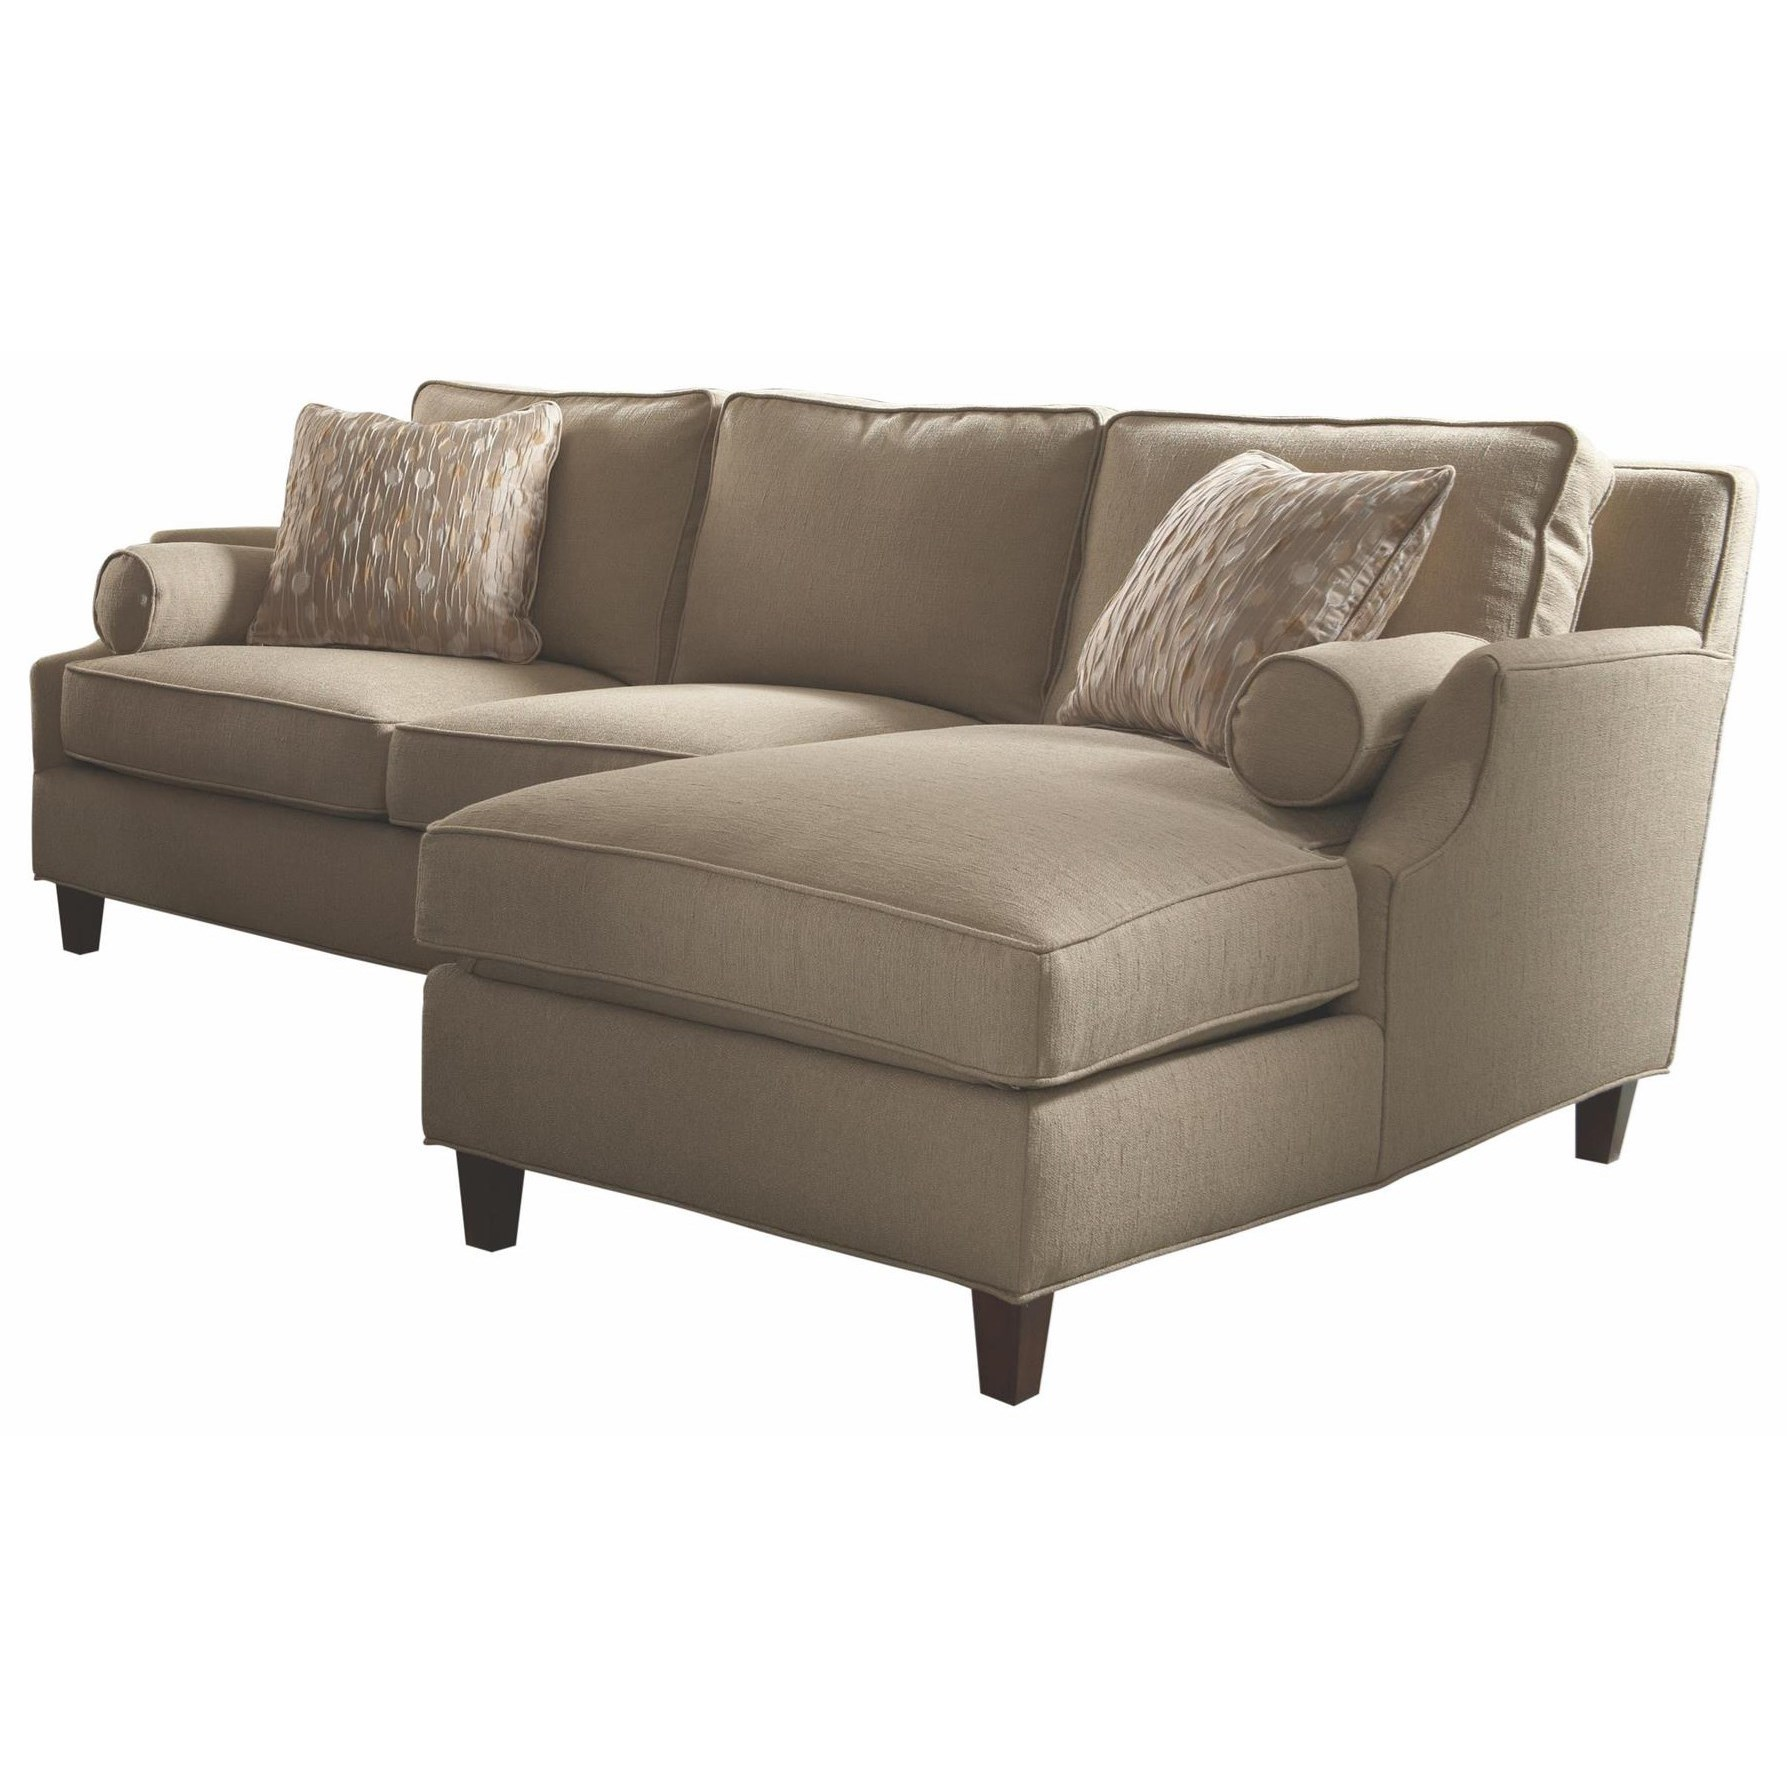 Fine Furniture Design Protege Sofa With LAF Chaise